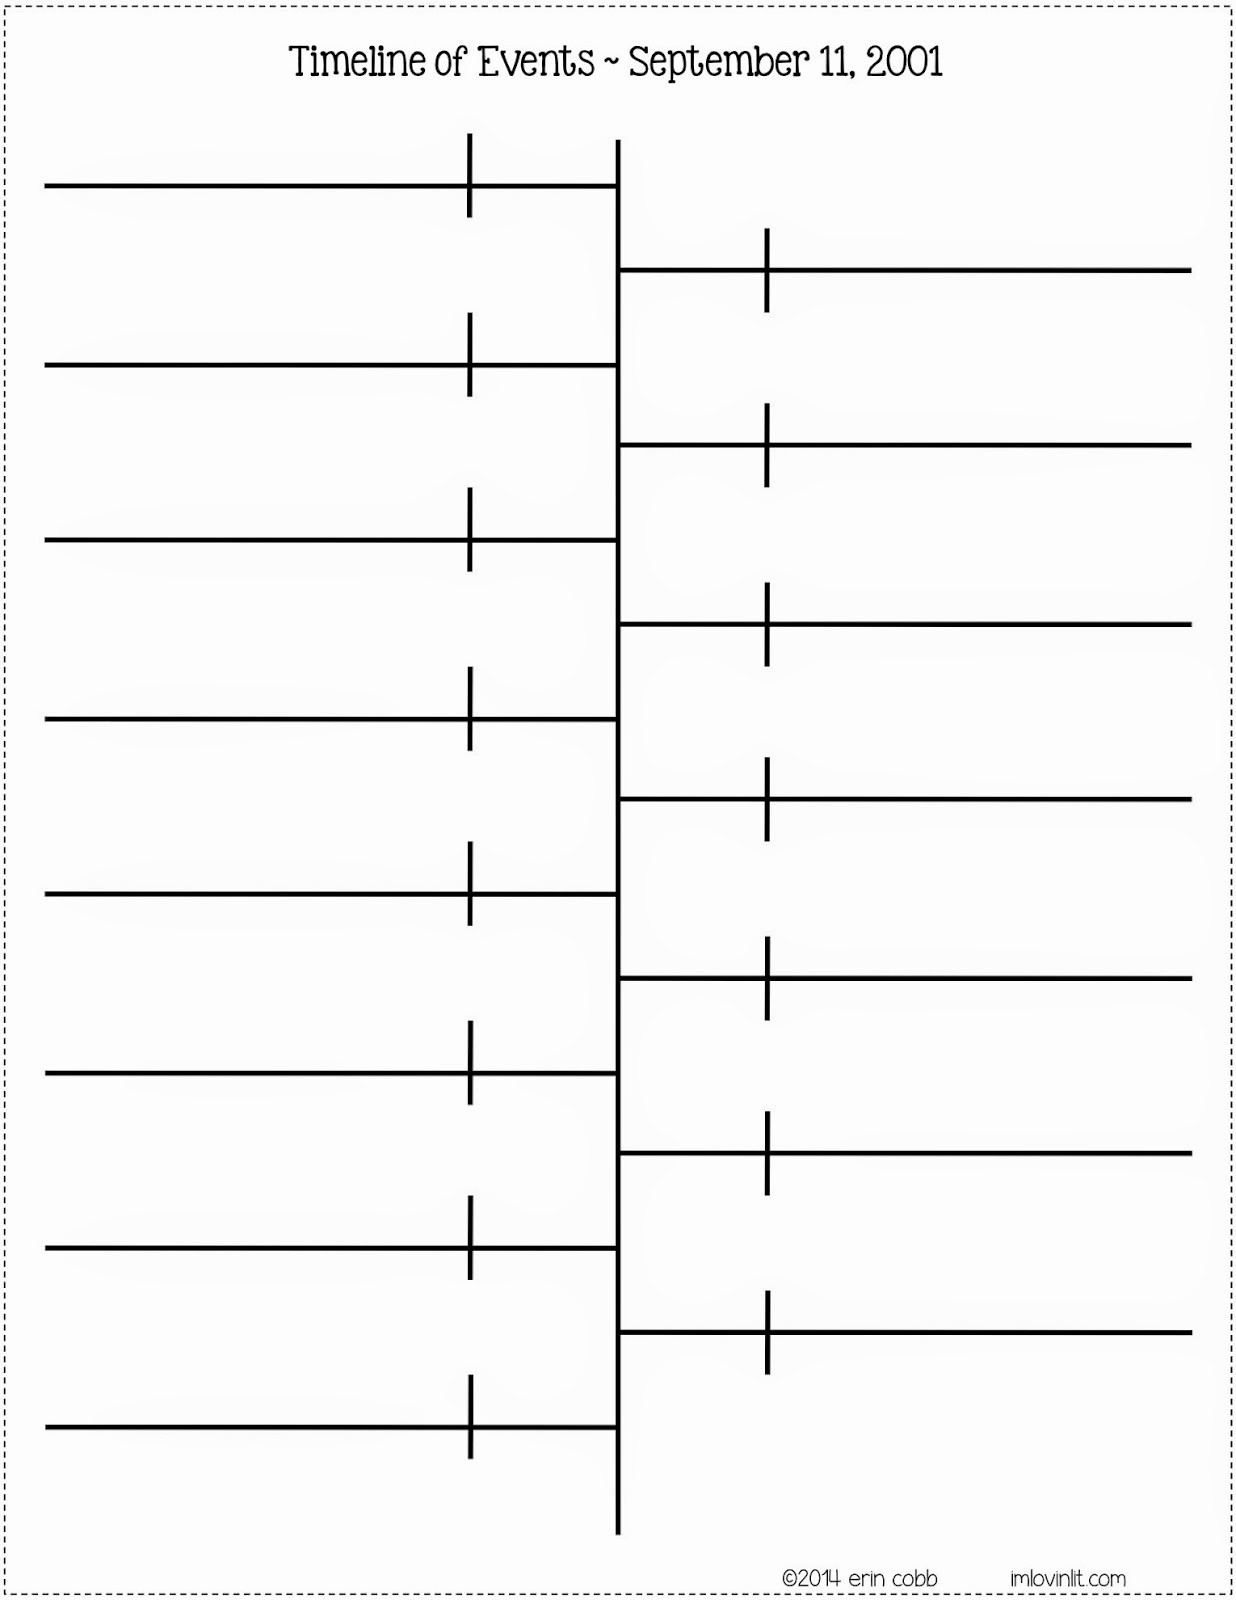 Blank Timeline Template 10 events Best Of Best S Of Fill In Timeline Template Printable Blank